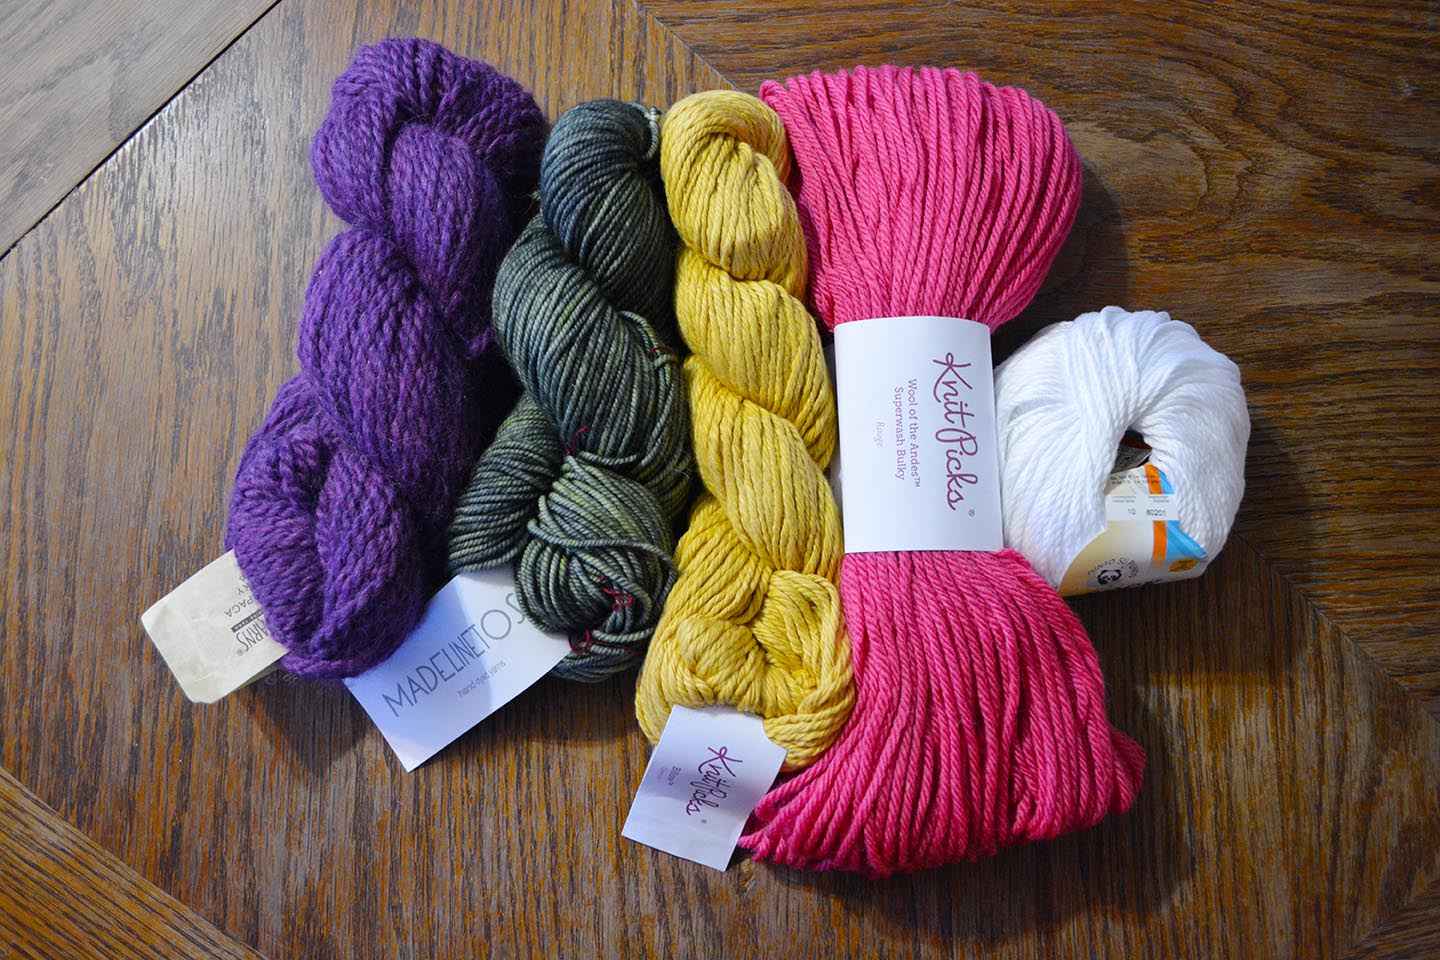 """These are all 100 g/3.5 oz skeins of """"Bulky"""" weight yarn (#5.) The yardages on each skein, from left to right, are: 108 yards, 165 yards, 120 yards, 137 yards, 132 yards."""